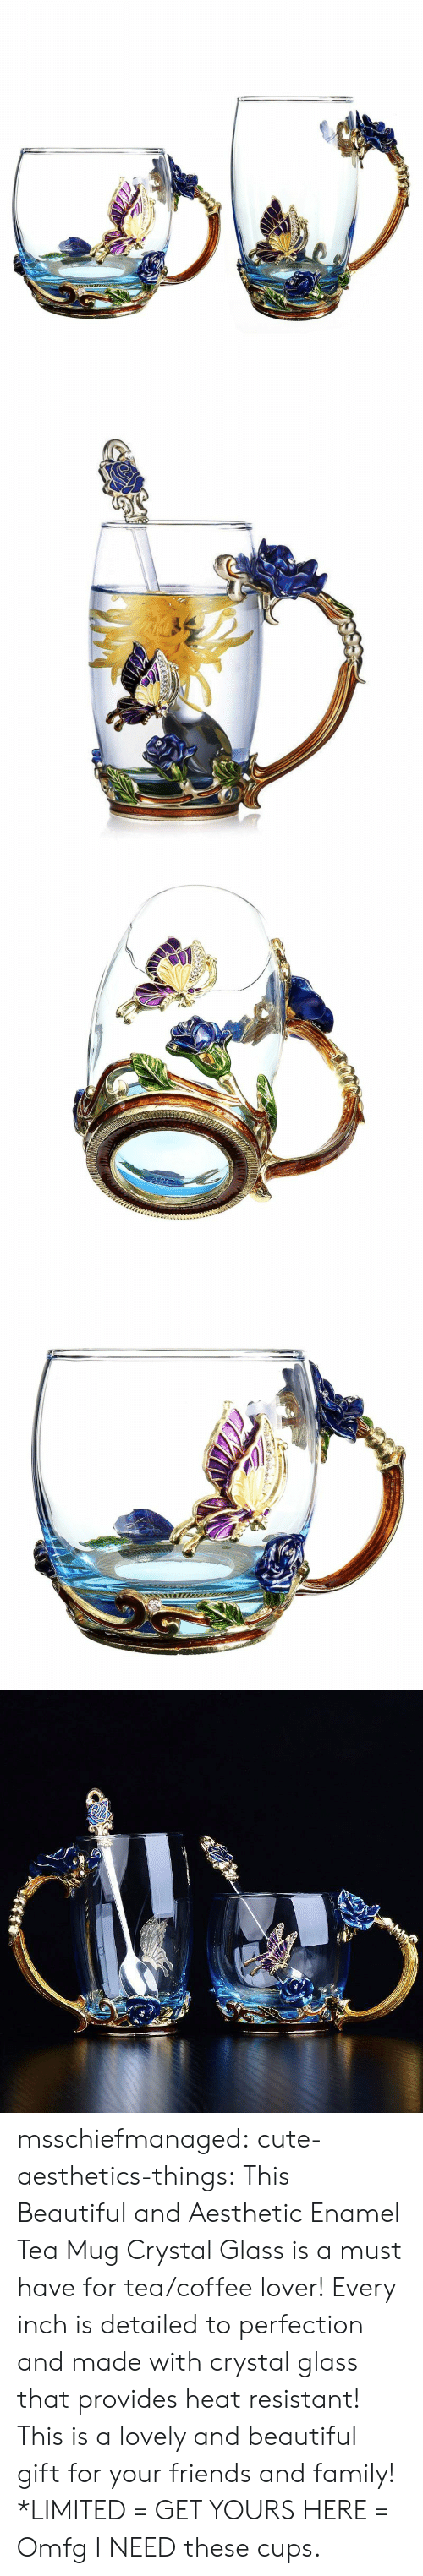 Beautiful, Cute, and Family: msschiefmanaged: cute-aesthetics-things:  This Beautiful and Aesthetic Enamel Tea Mug Crystal Glass is a must have for tea/coffee lover! Every inch is detailed to perfection and made with crystal glass that provides heat resistant! This is a lovely and beautiful gift for your friends and family! *LIMITED = GET YOURS HERE =   Omfg I NEED these cups.